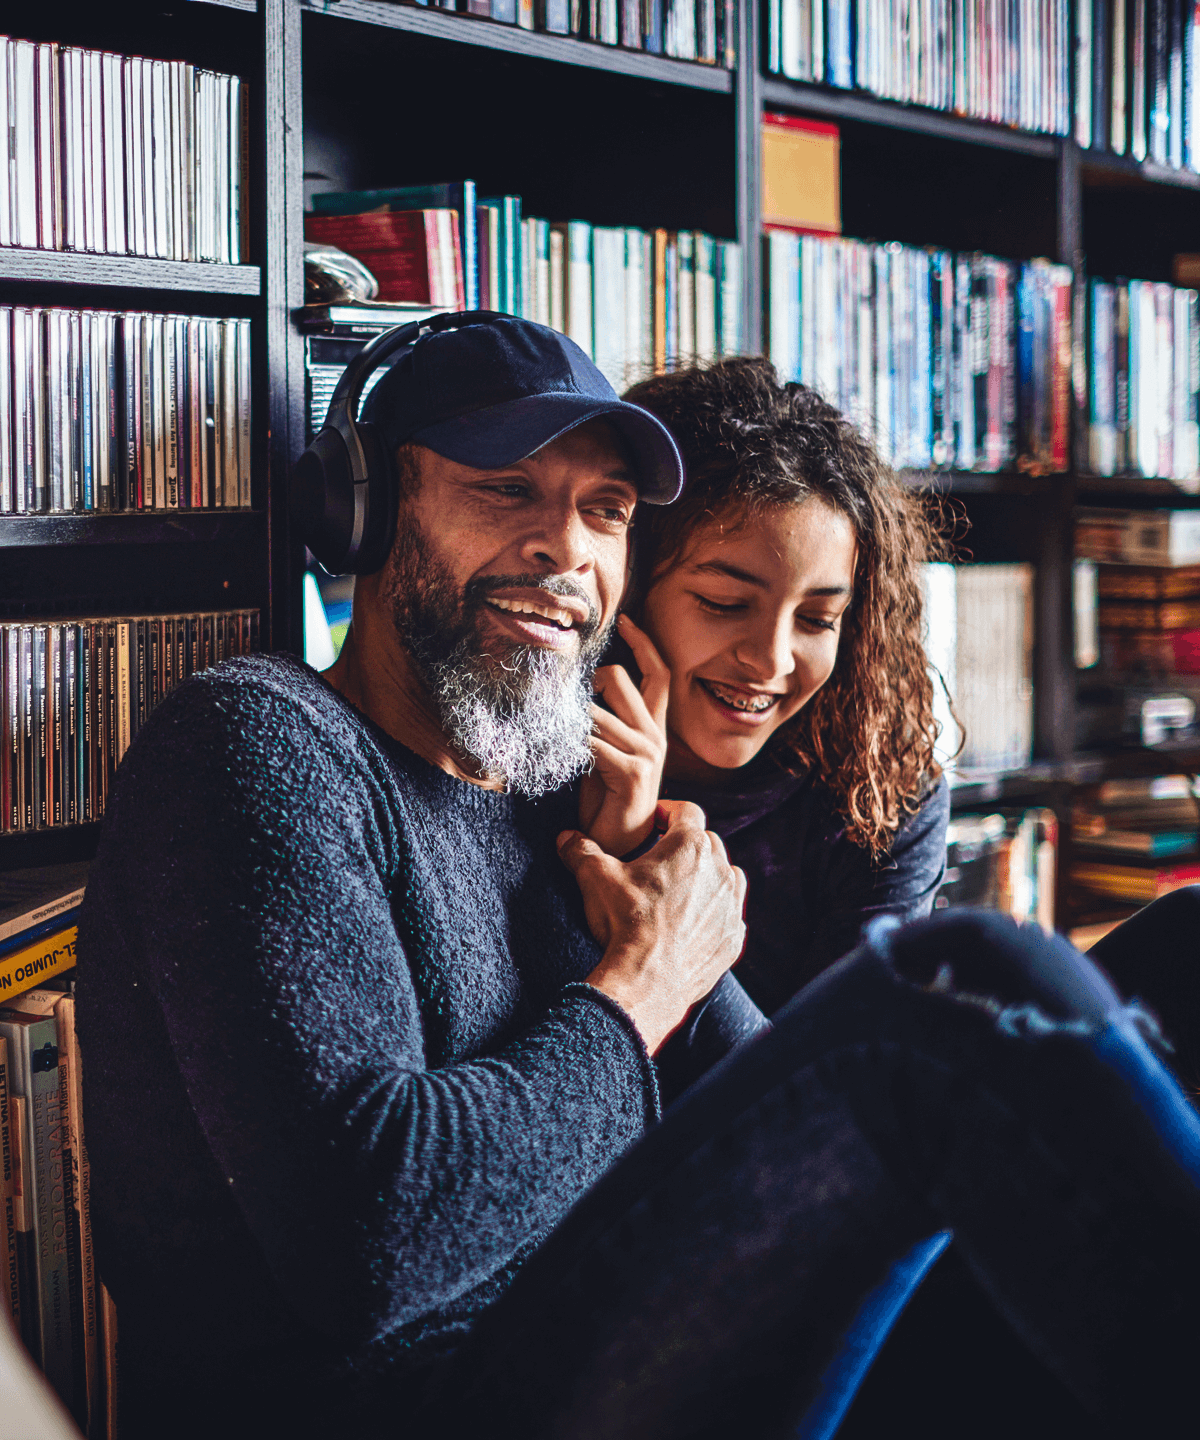 A father and his daughter listening to music together